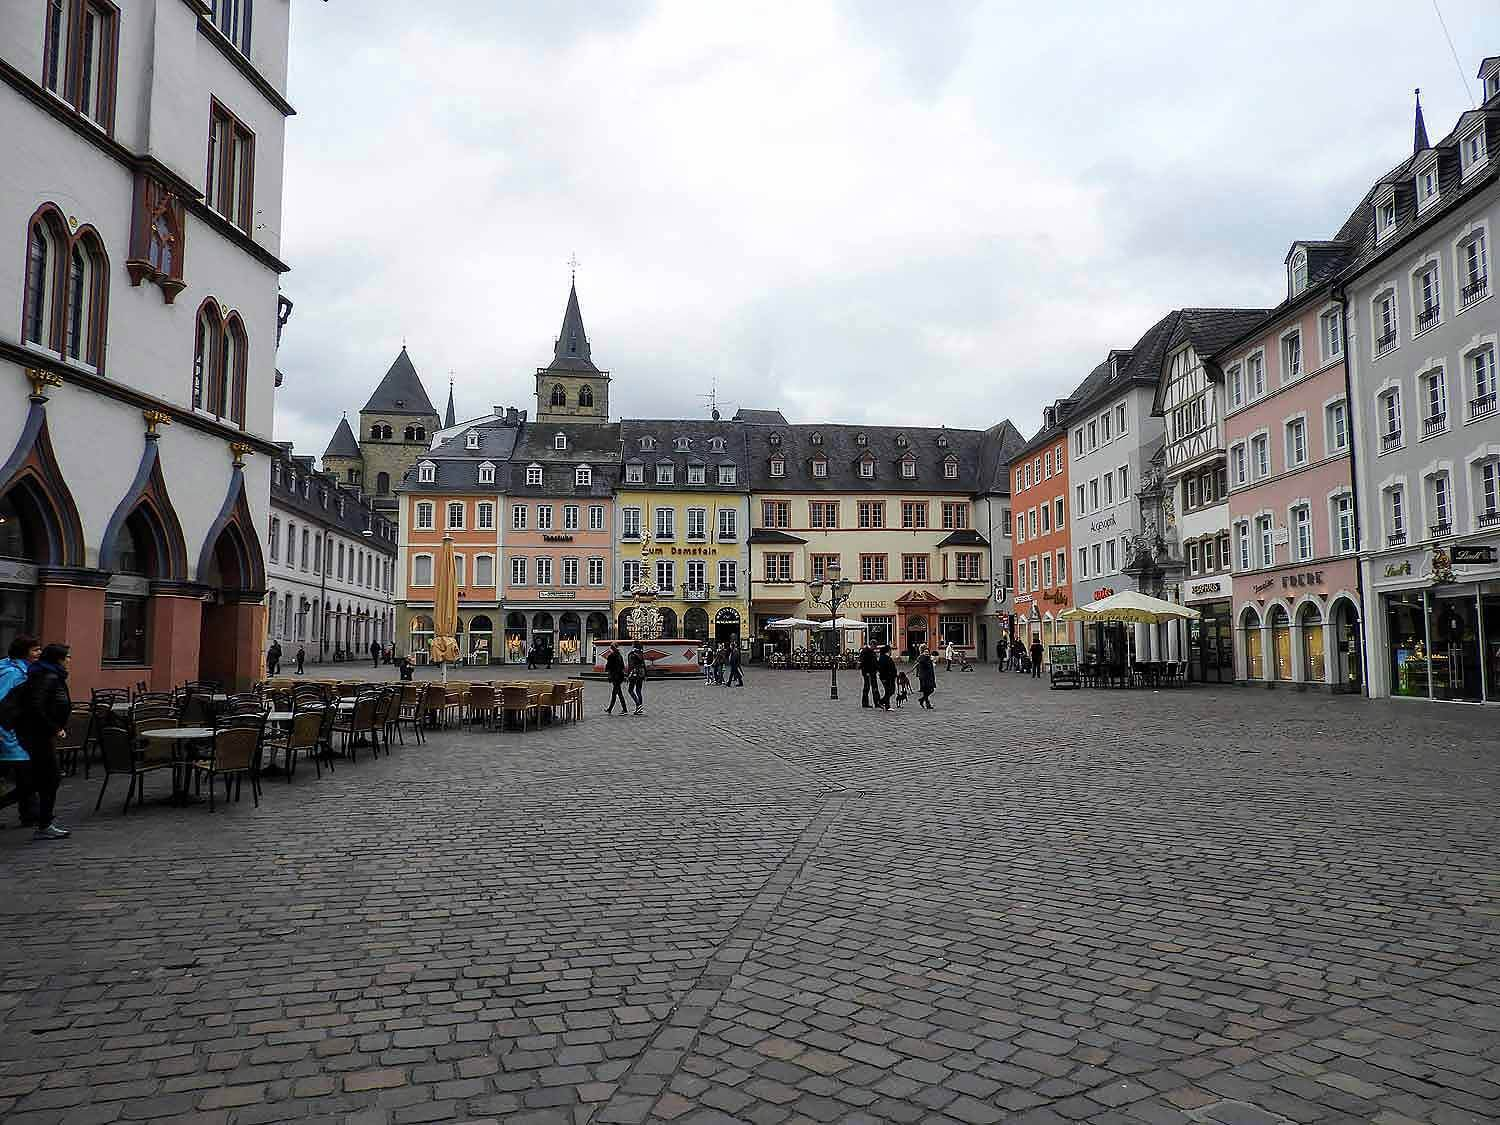 germany-trier-zentrum-center-marktplatz.jpg